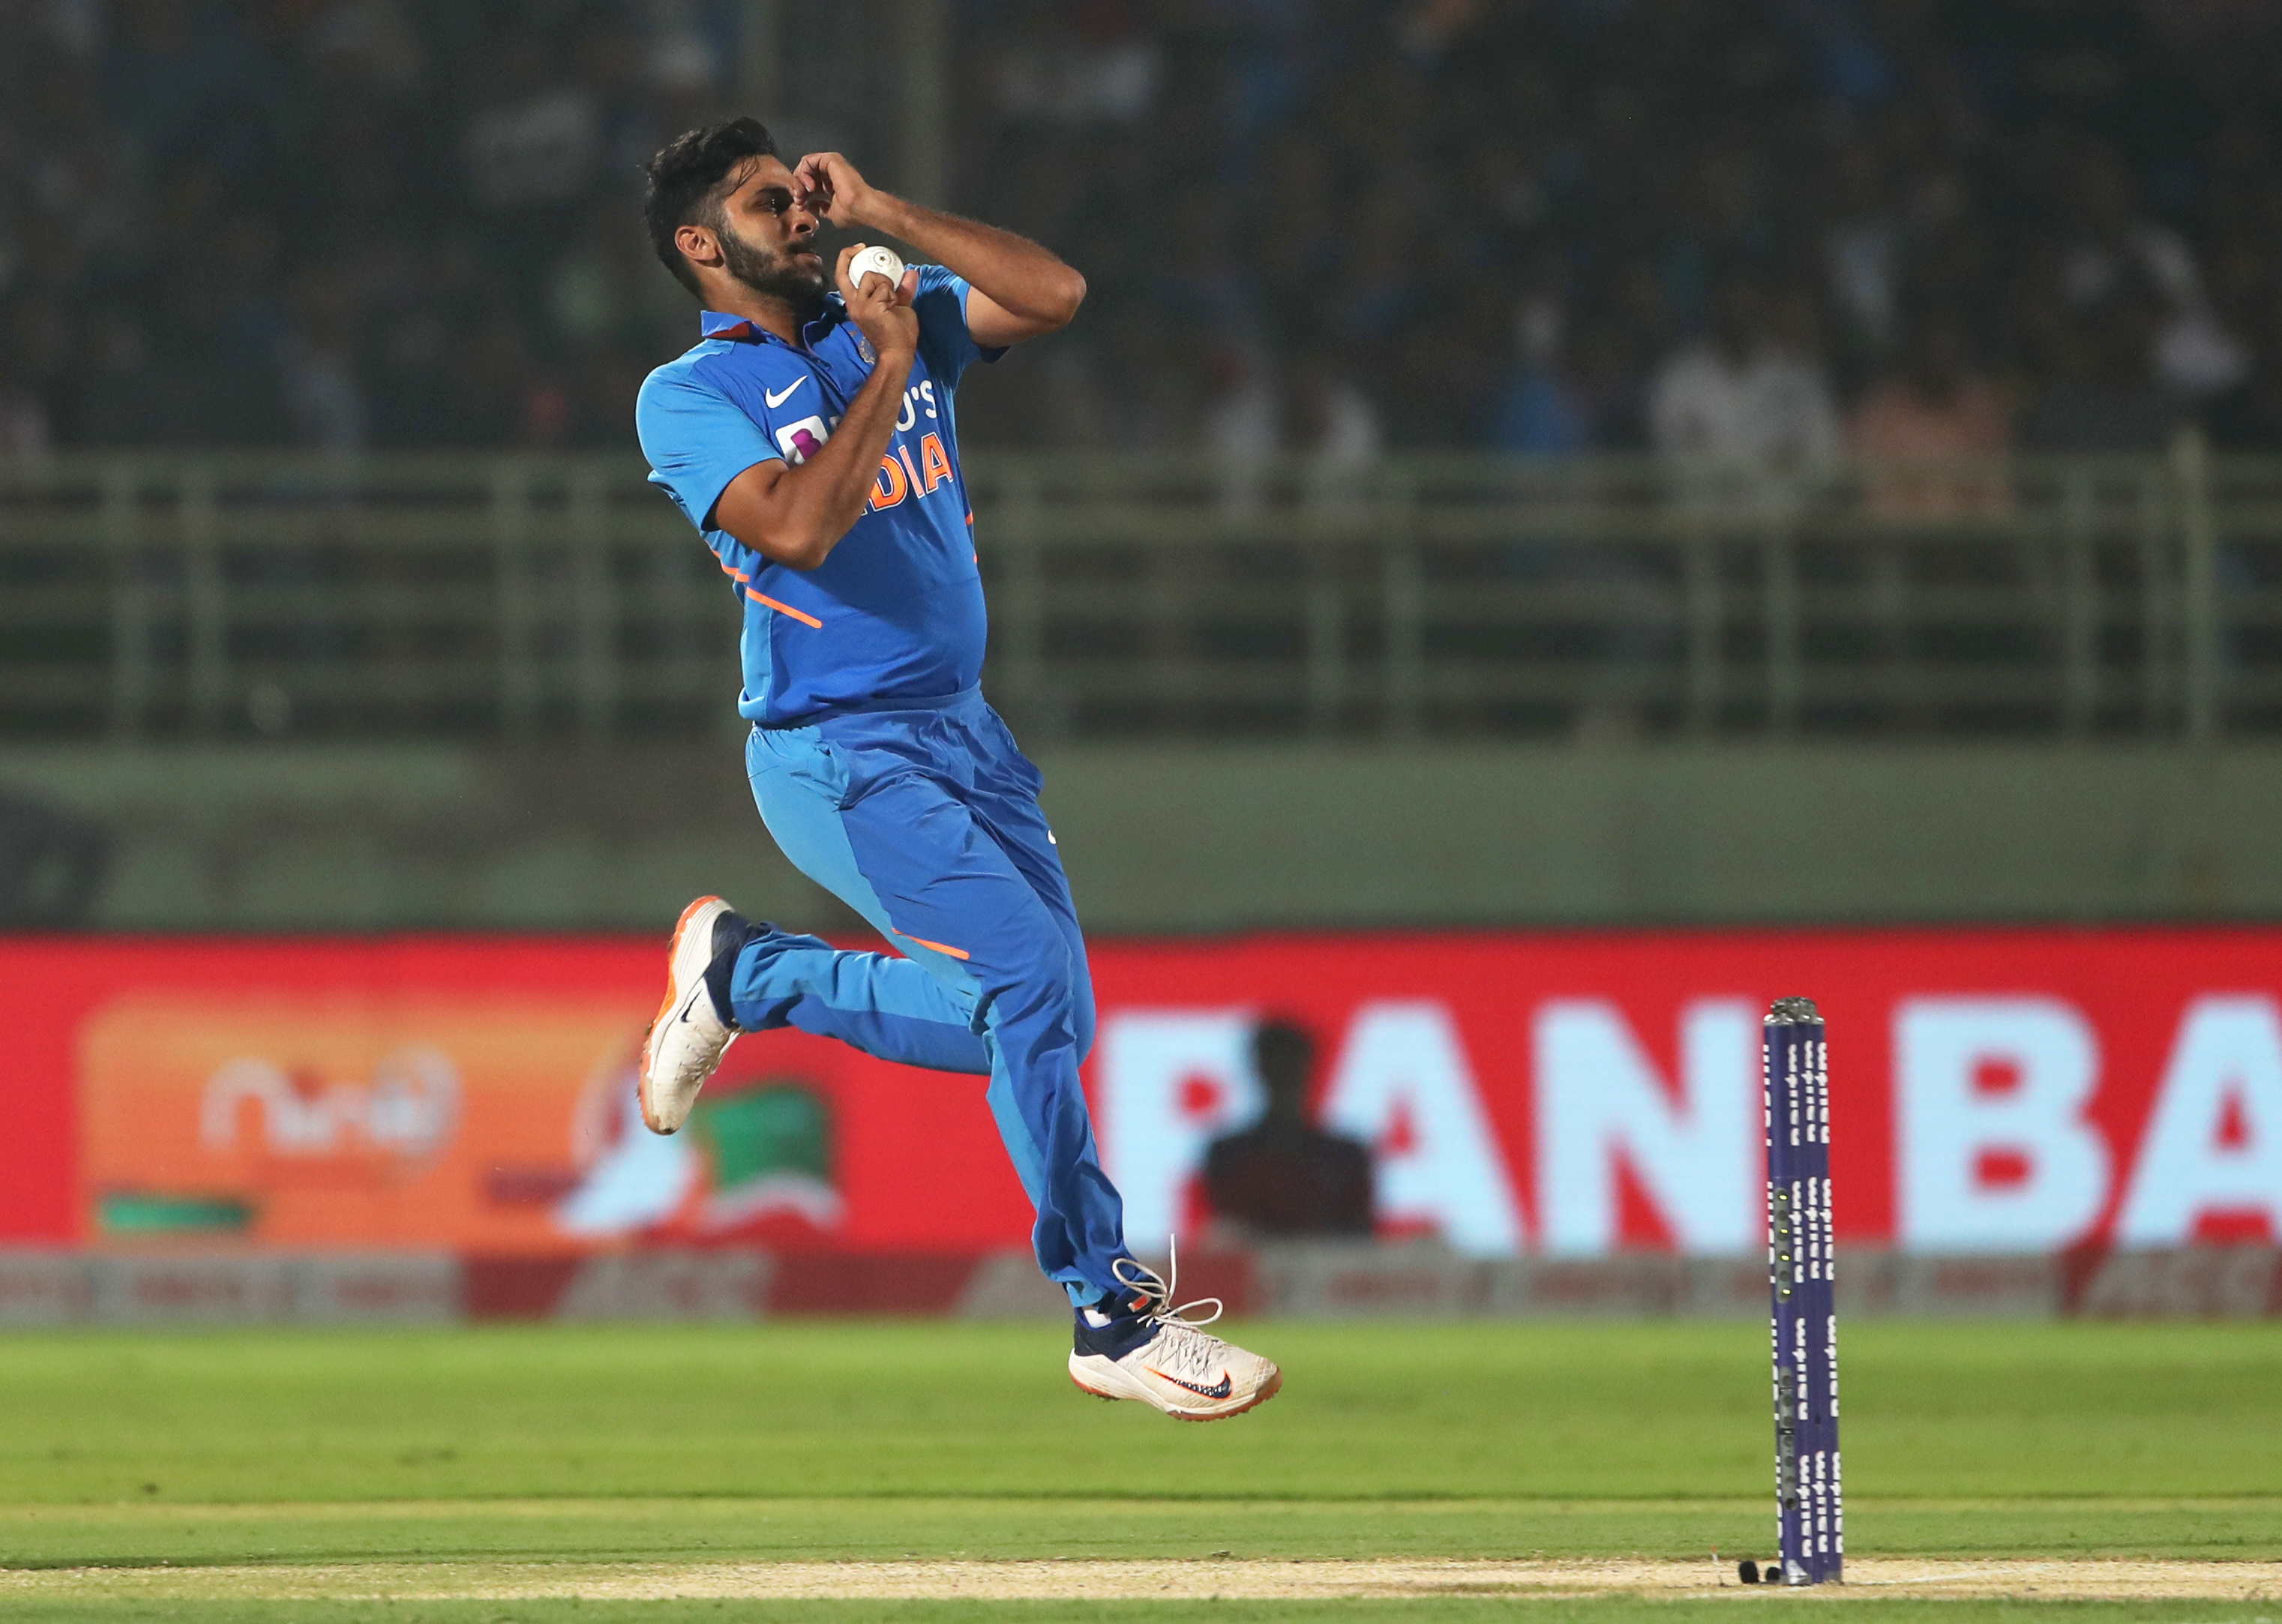 M in his name stands for match-winner': Twitter trolls Shardul Thakur for off-beat deliveries